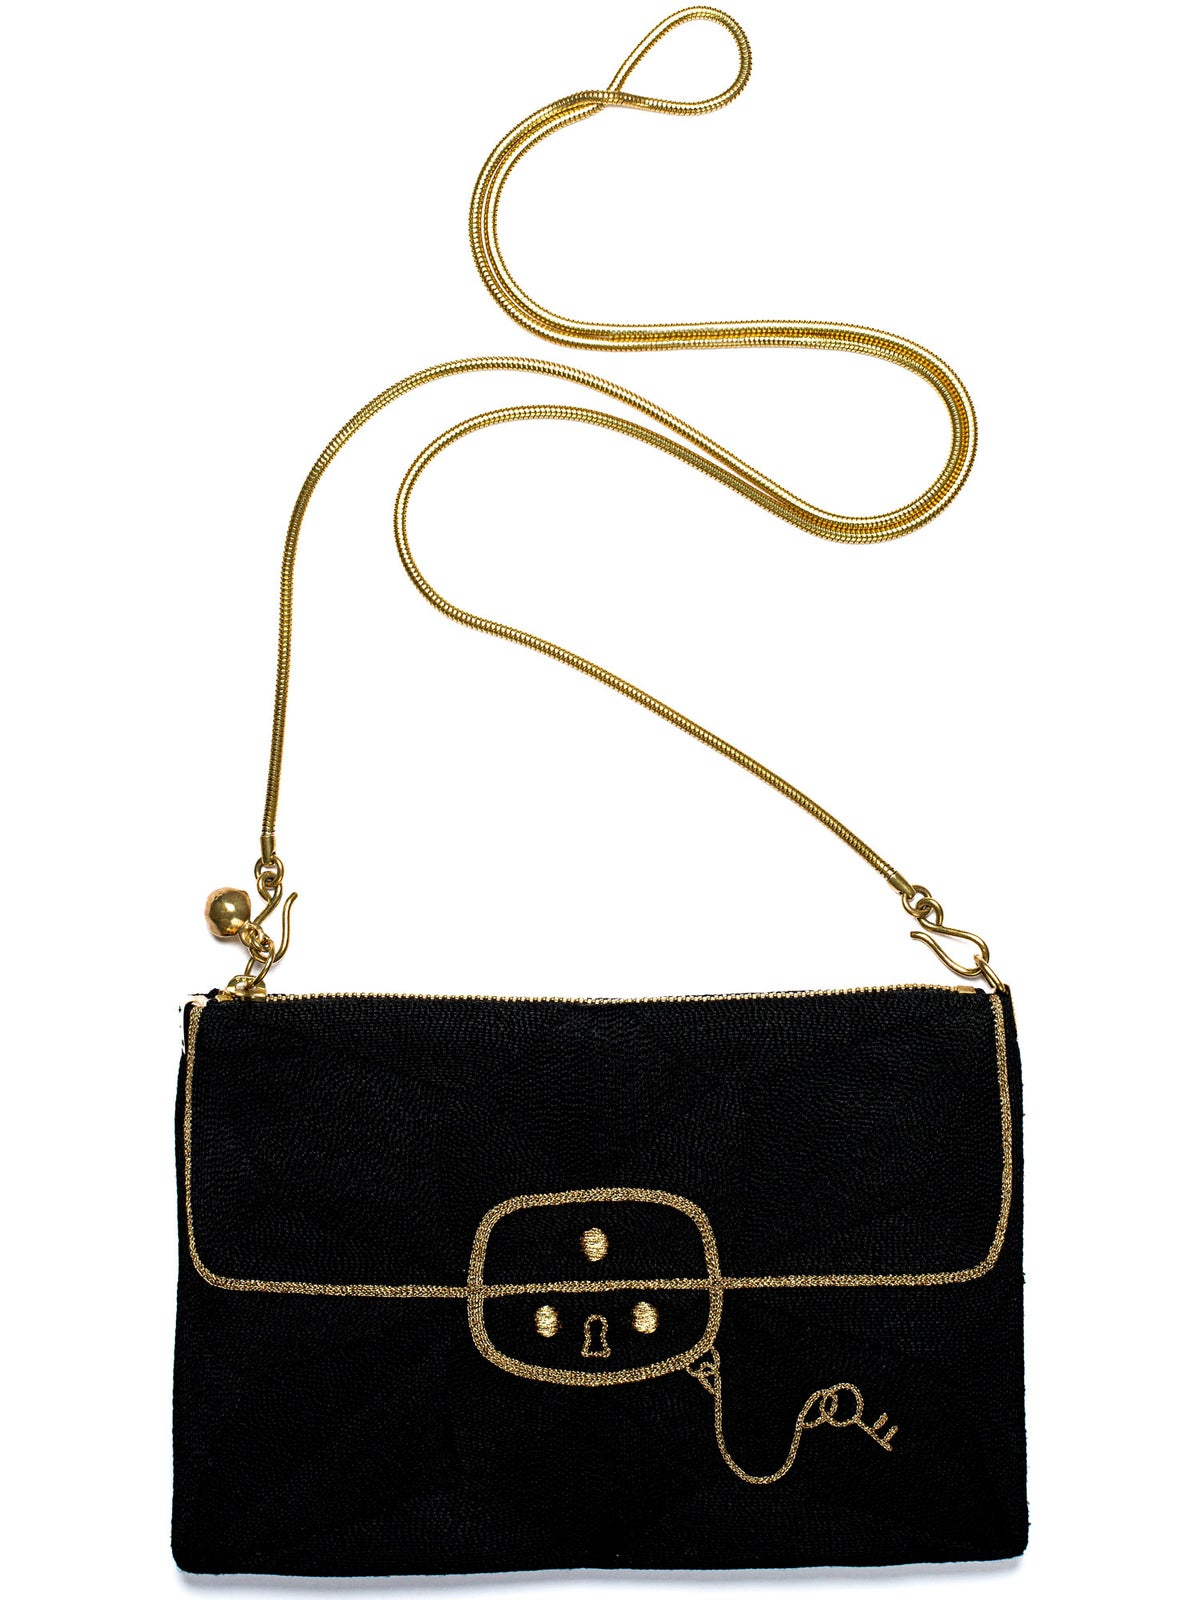 "Image of coco black/gold</br><span class=""product_size"">zip pouch medium </br>with long chain</span>"